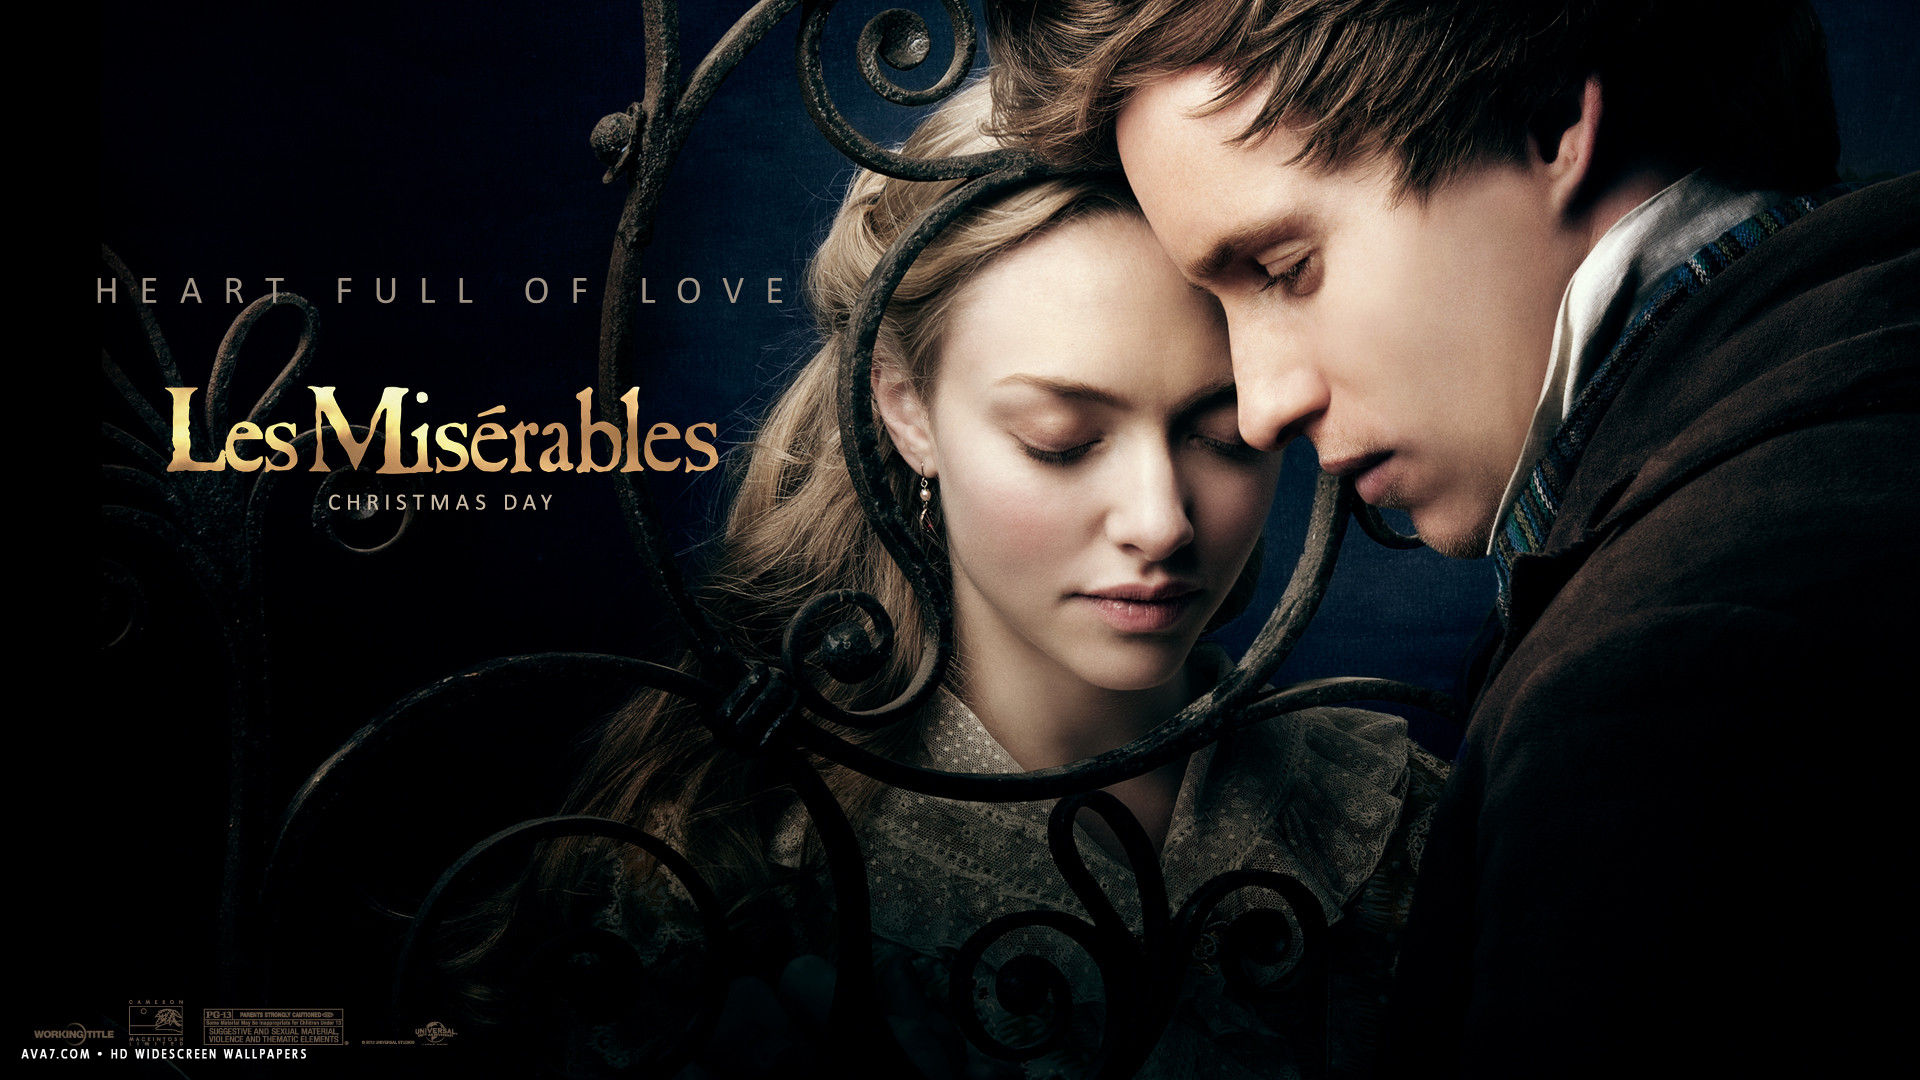 Les Miserables Movie Hd Widescreen Wallpaper Movies Backgrounds